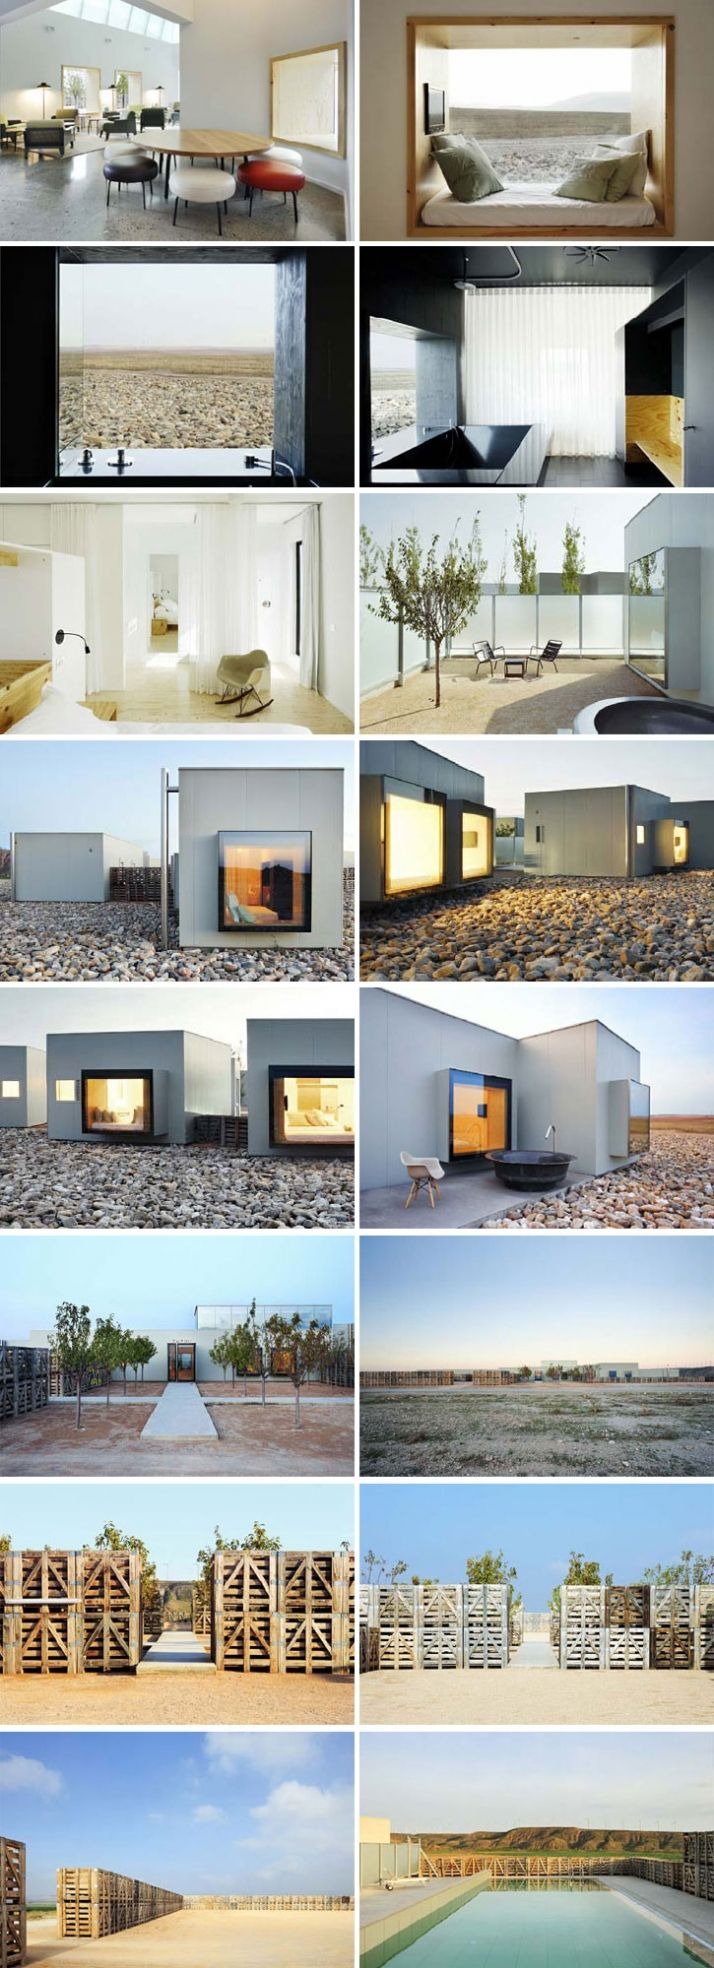 Hotel Aire de Bardenas in Spain